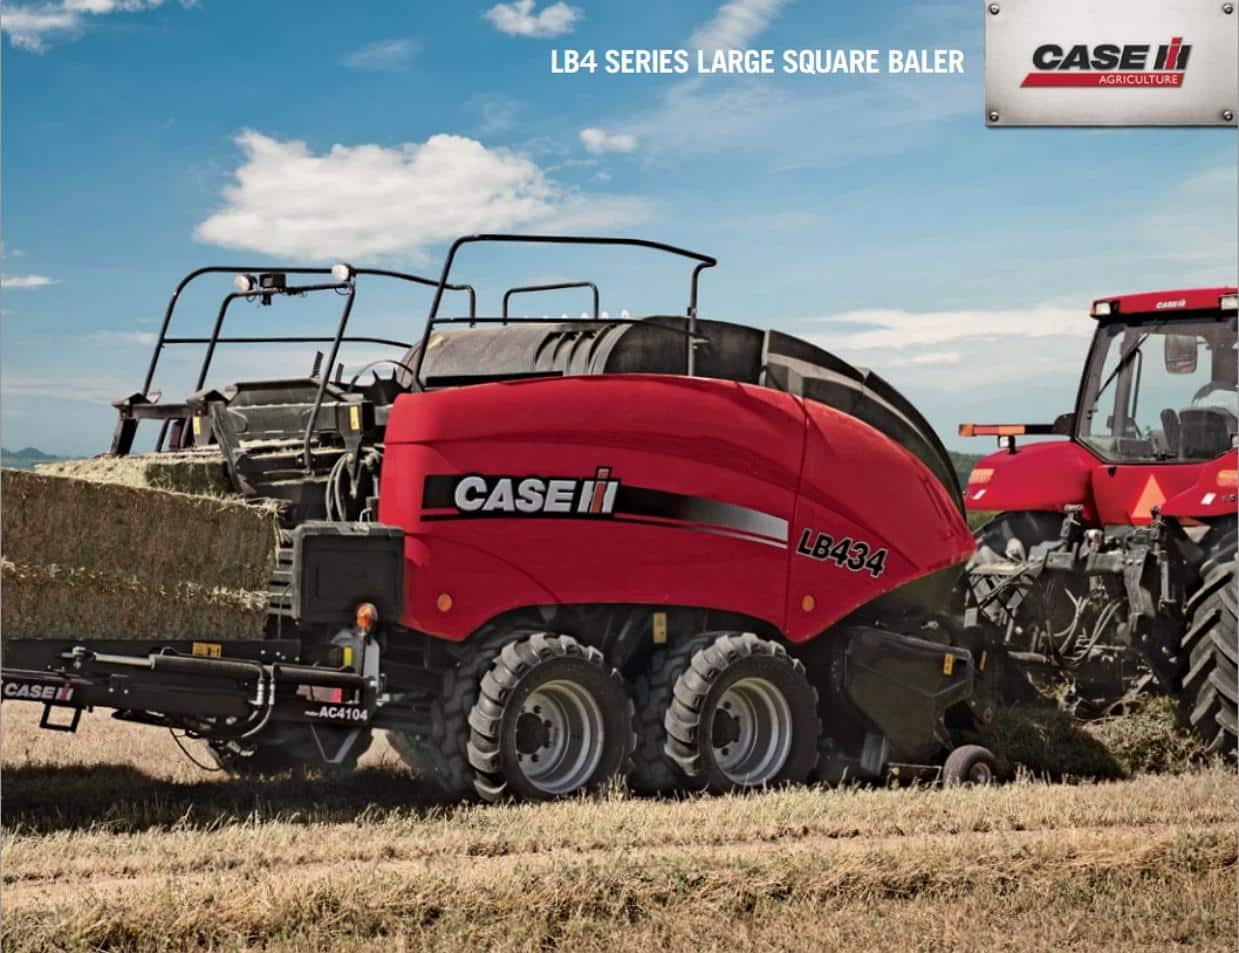 LB4 Series Large Square Baler Brochure